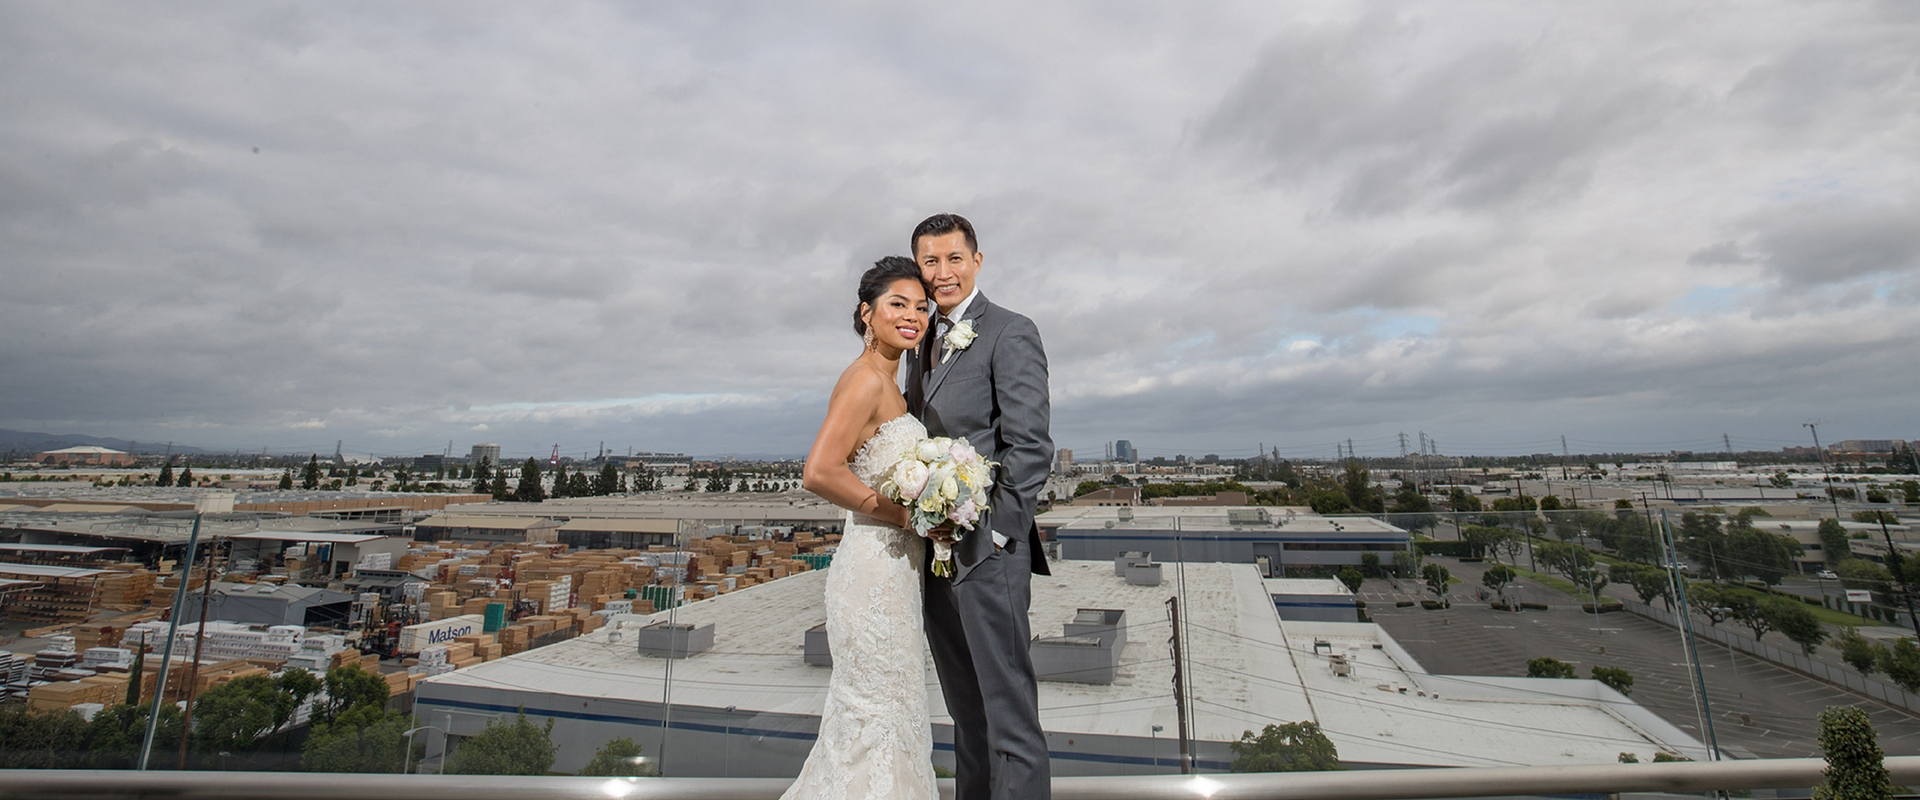 A bride and groom pictured on the balcony